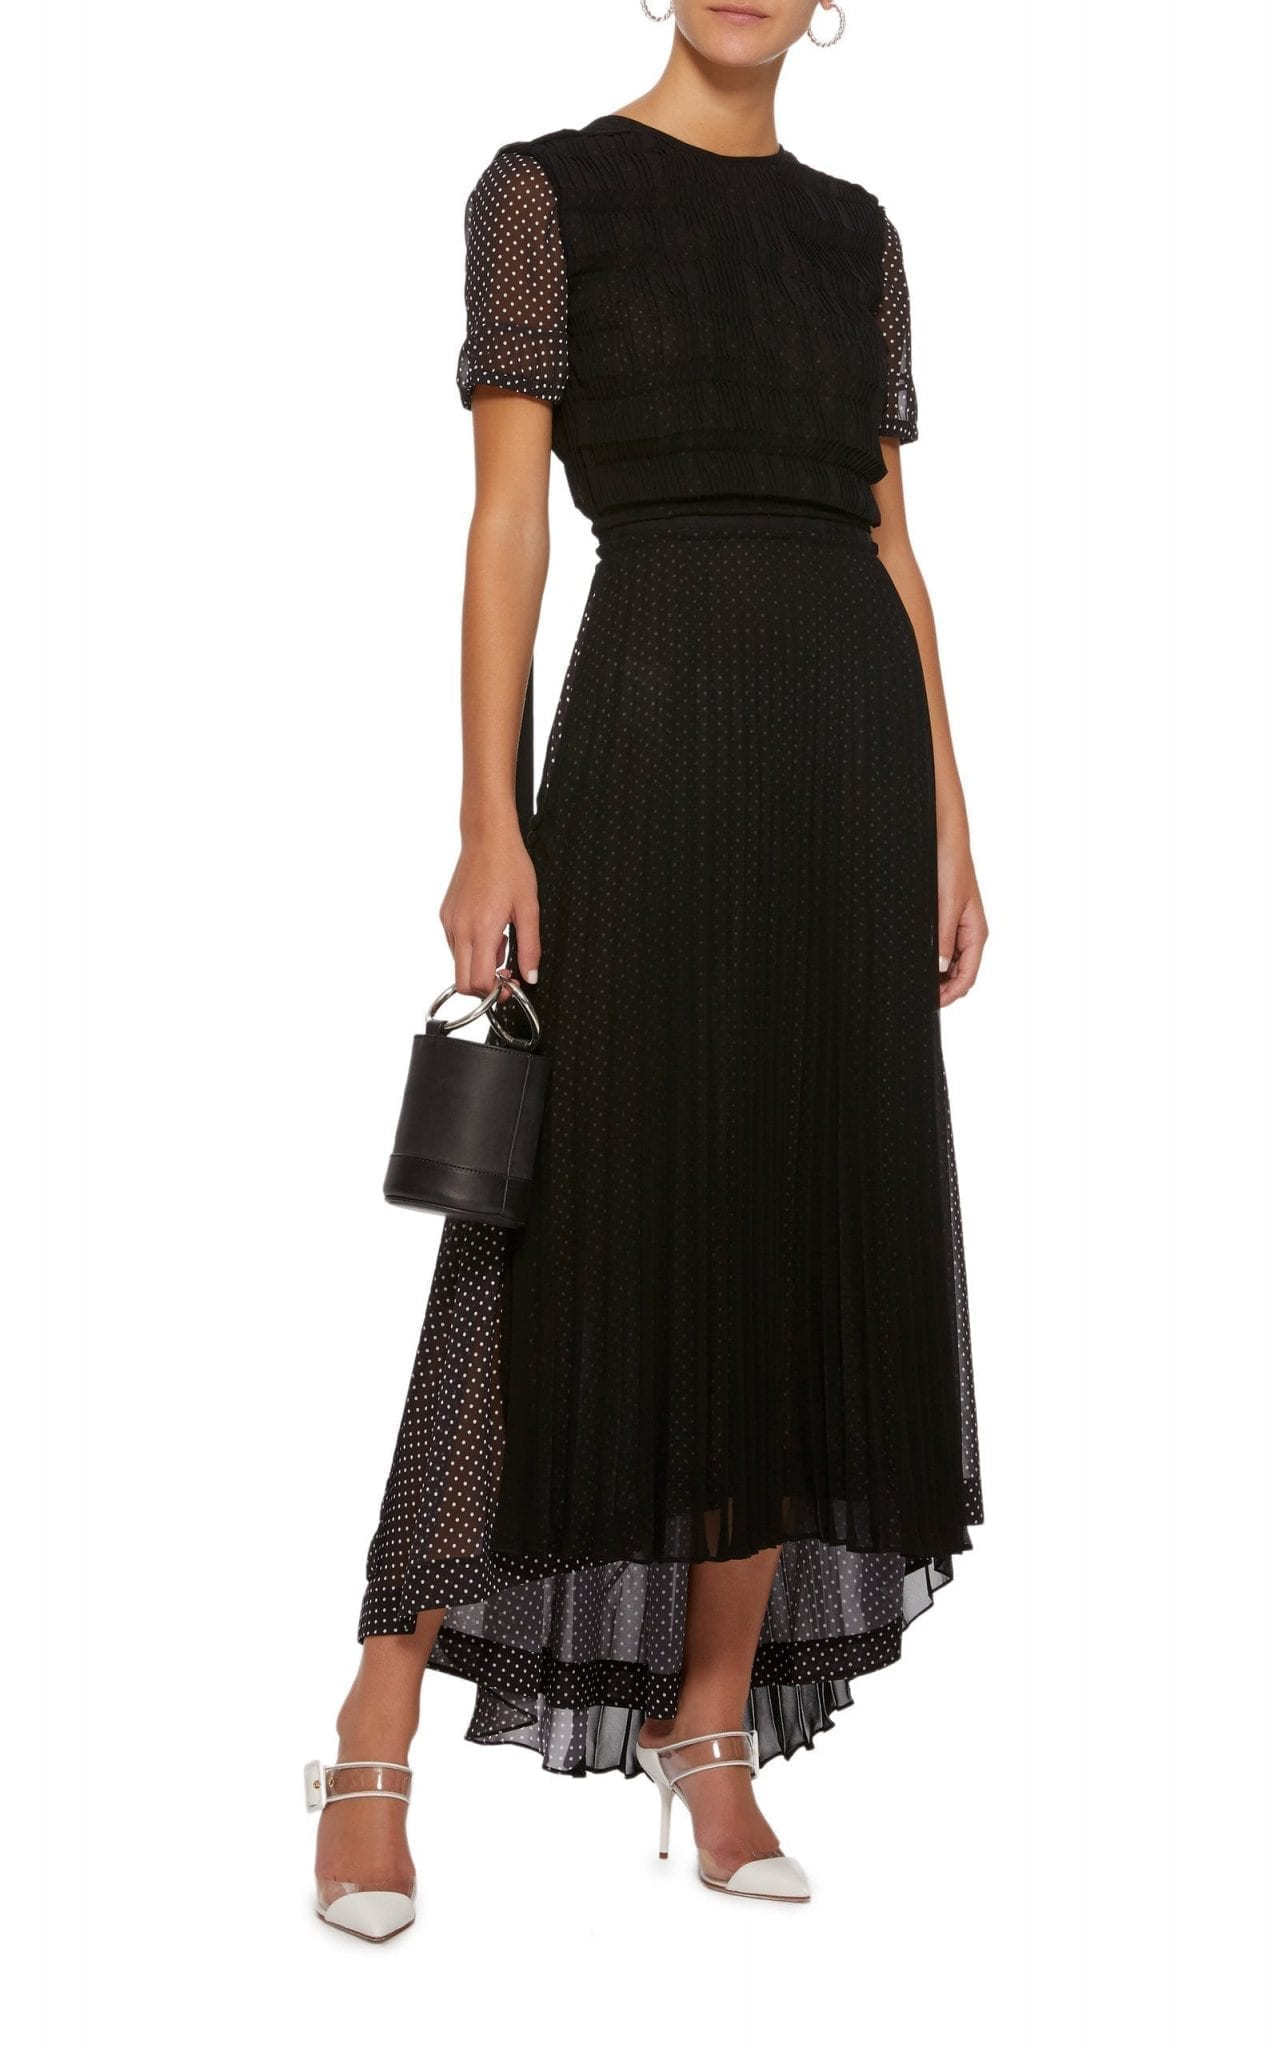 LOEWE Polka-Dot Pleated Chiffon Midi Black Dress